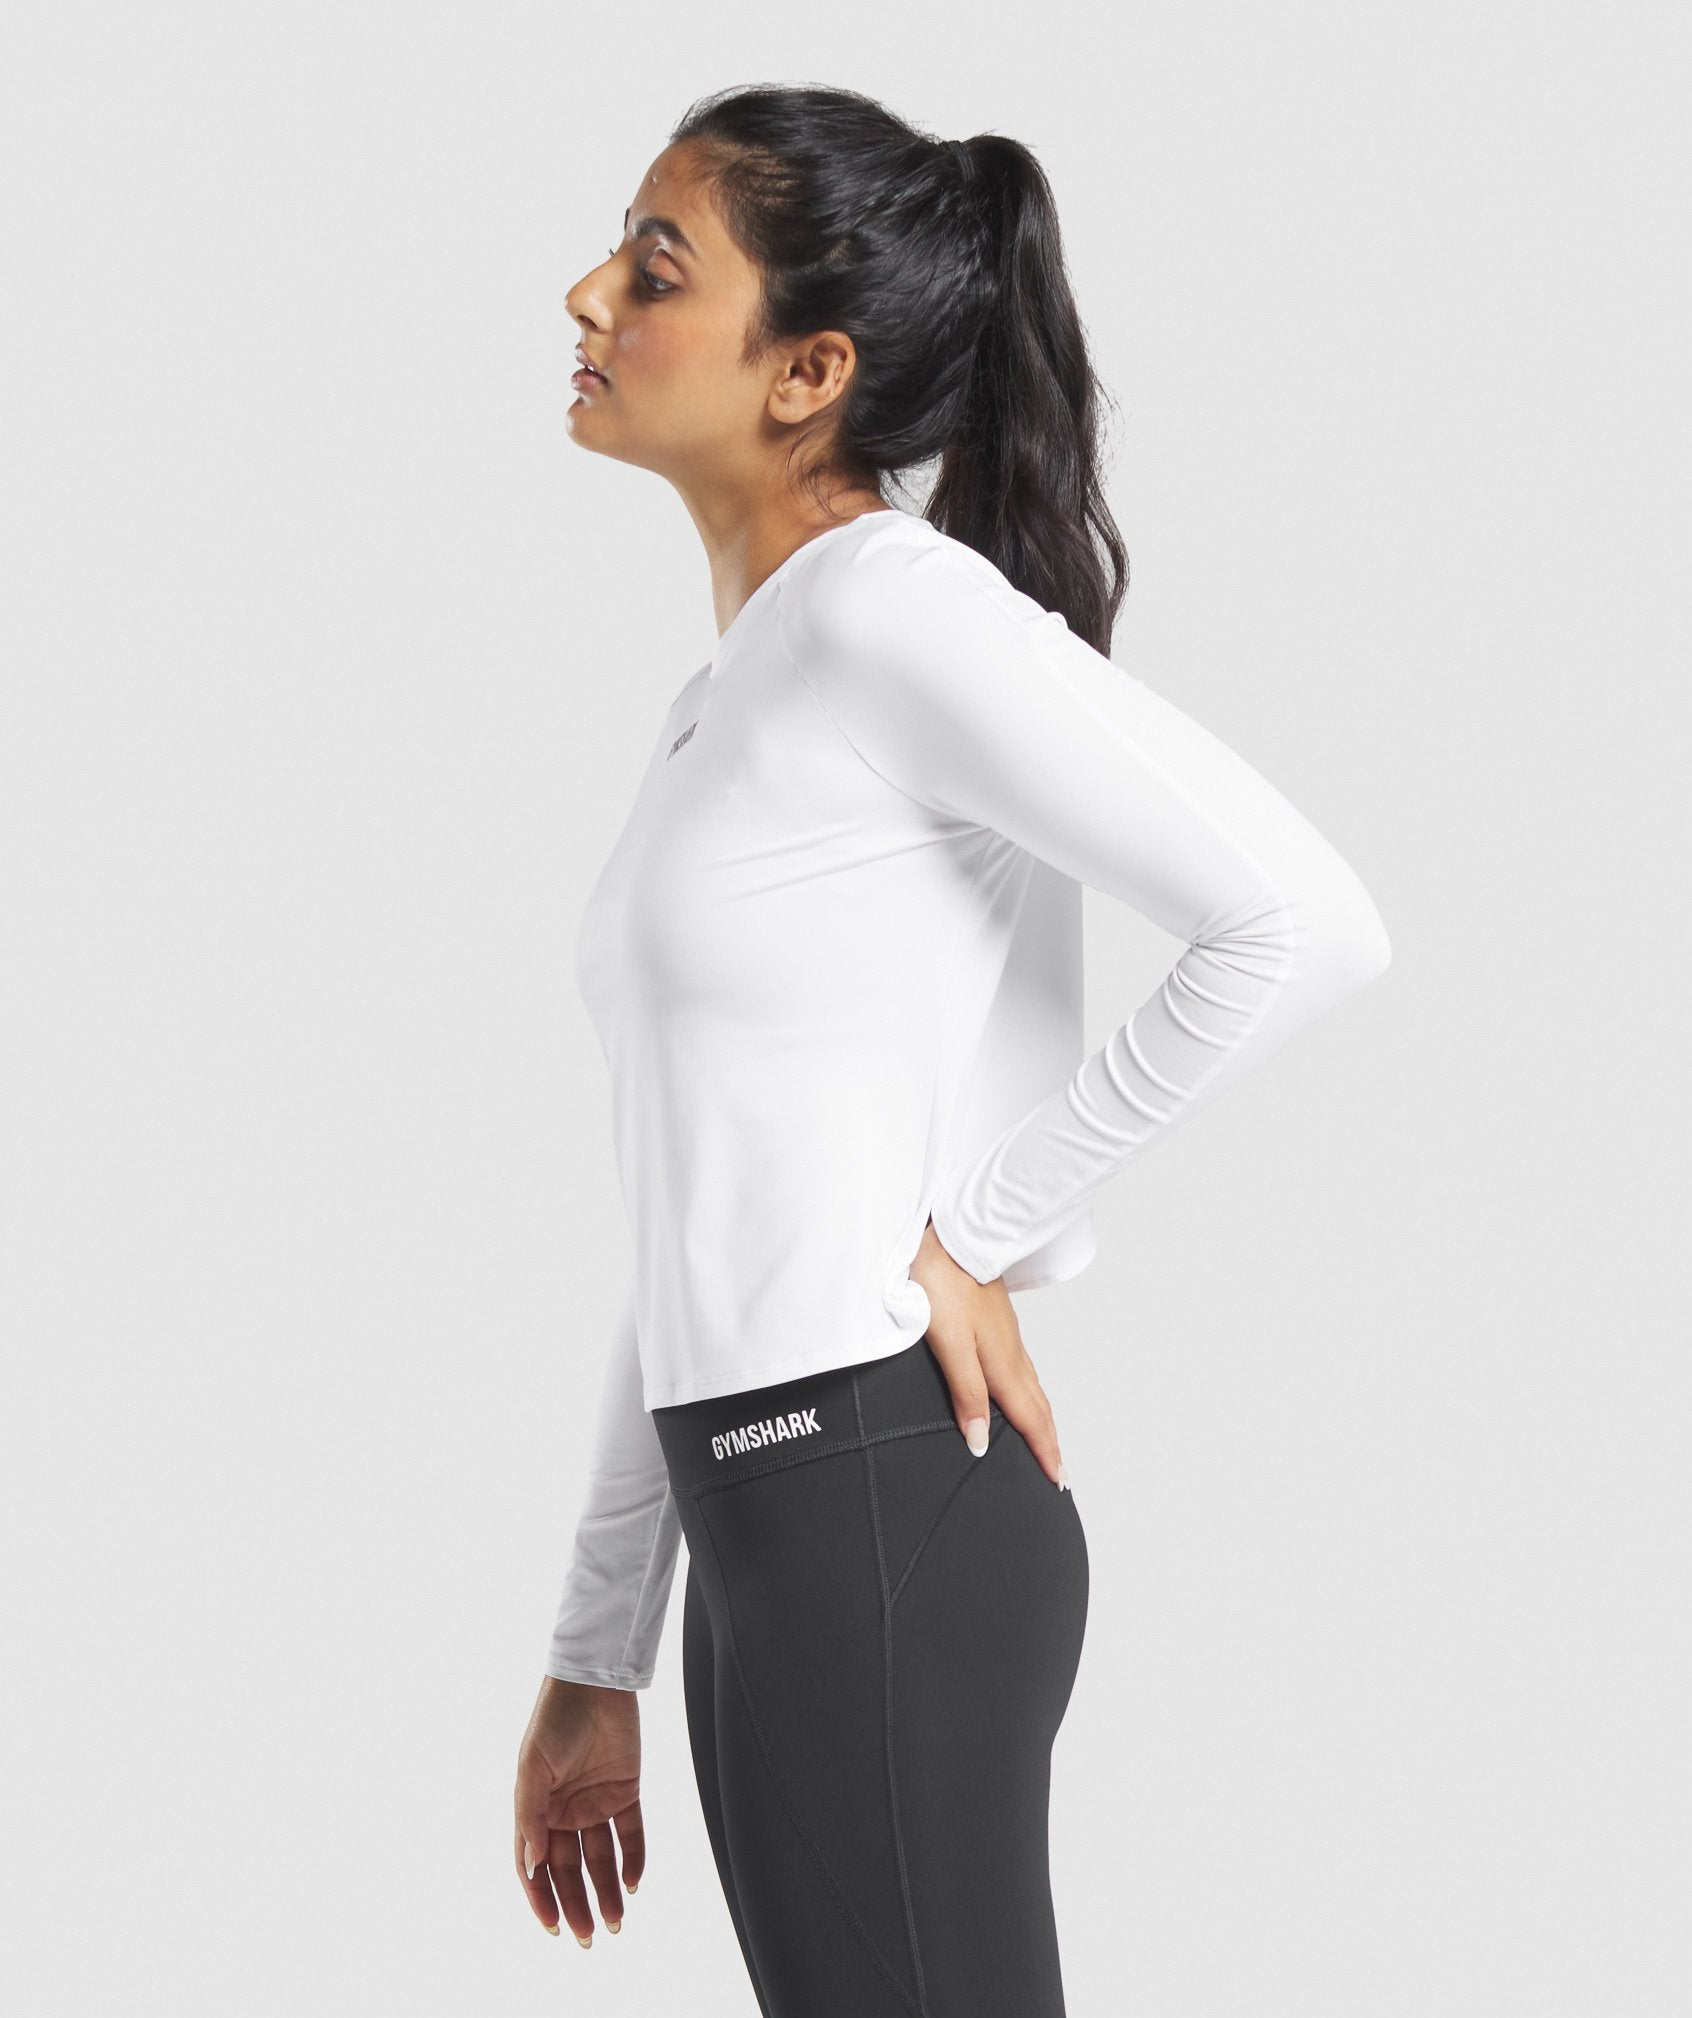 Classier: Buy Gymshark Euphoria Long Sleeve Top - White - Gymshark